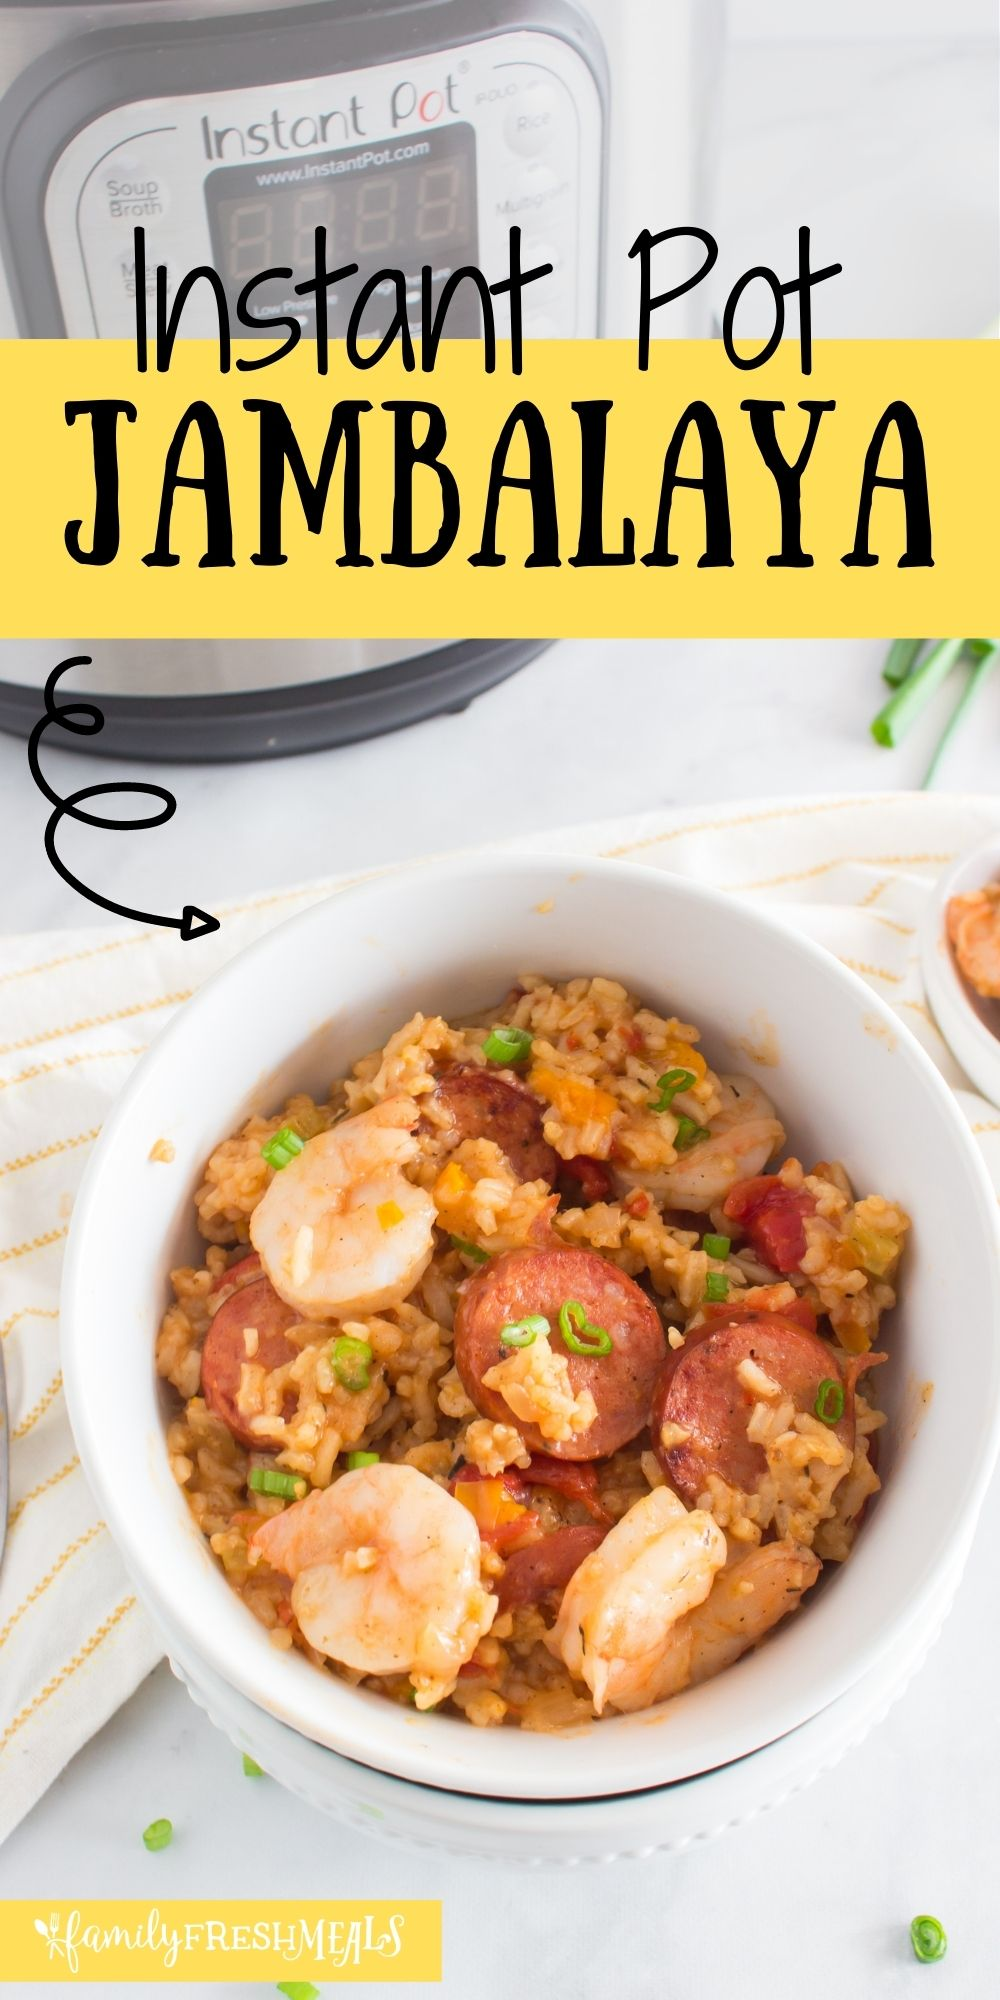 Who's in the mood for a little Cajun cookin'? This Instant Pot Jambalaya is a classic Louisiana stew made easy in your kitchen! via @familyfresh